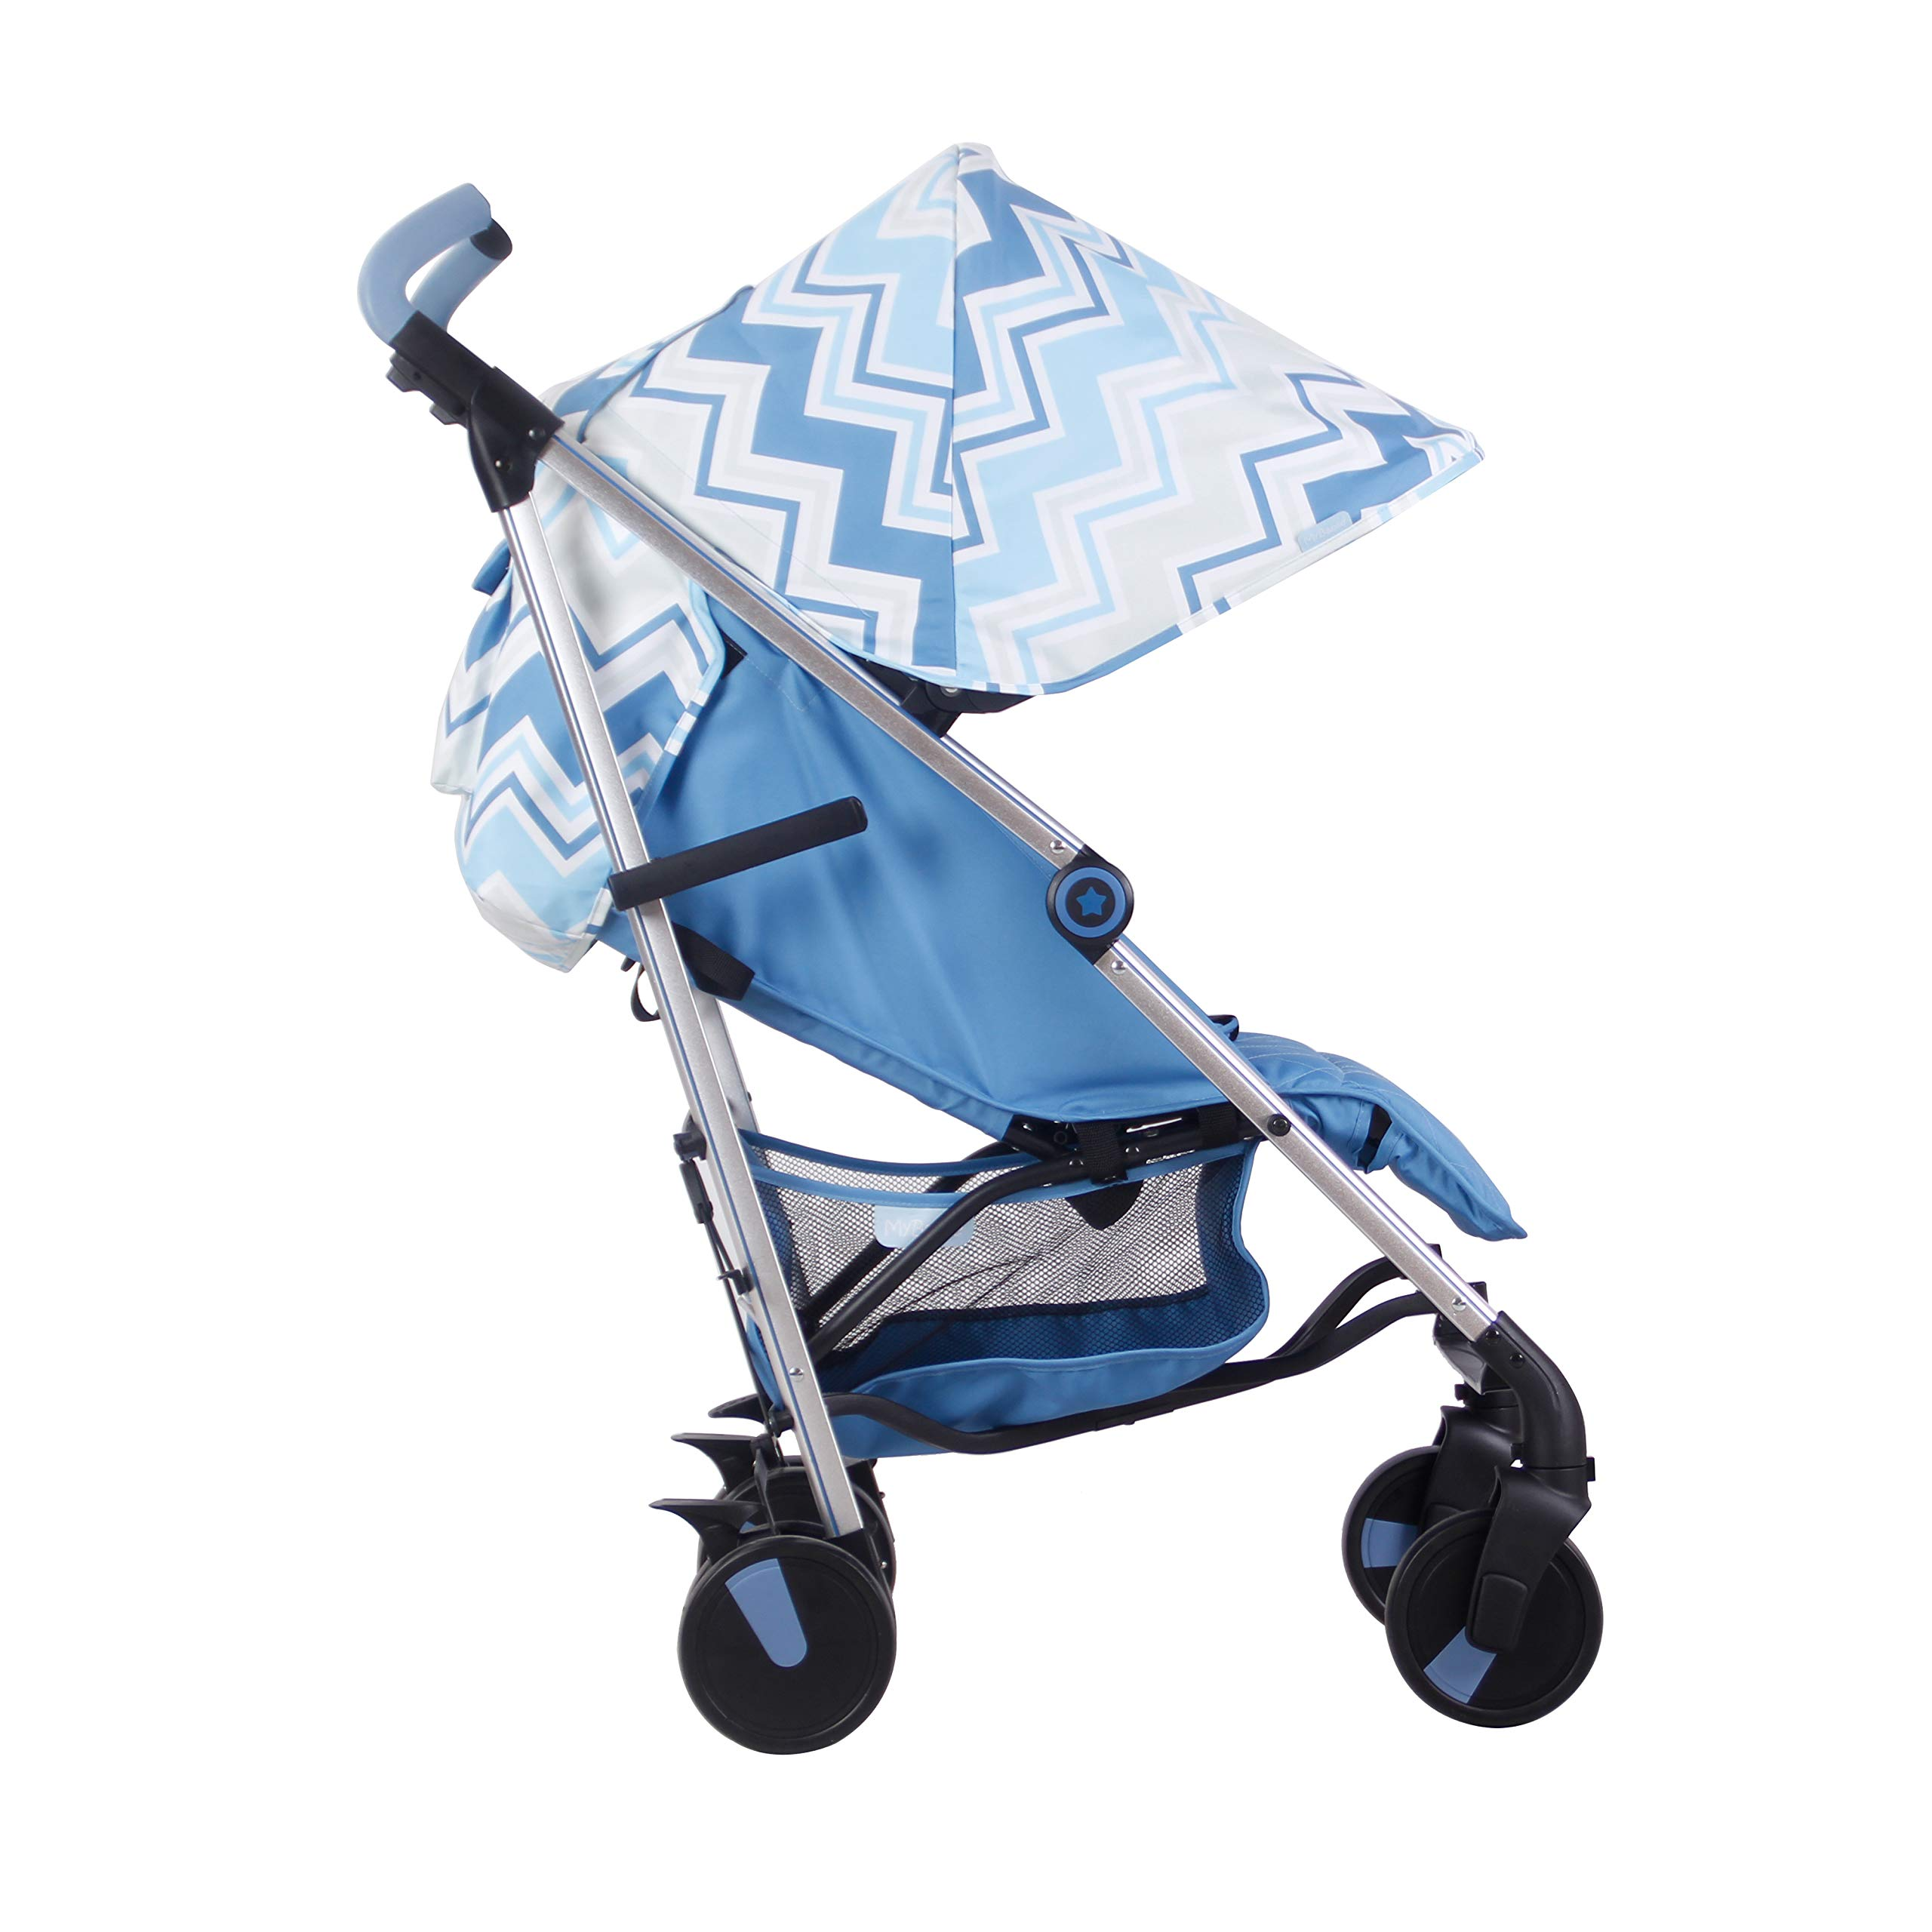 My Babiie US51 Dreamiie Blue Chevron Baby Stroller – Lightweight Baby Stroller with Carry Handle – Silver Frame and Blue Chevron – Lightweight Travel Stroller – Suitable from Birth – 33 lbs